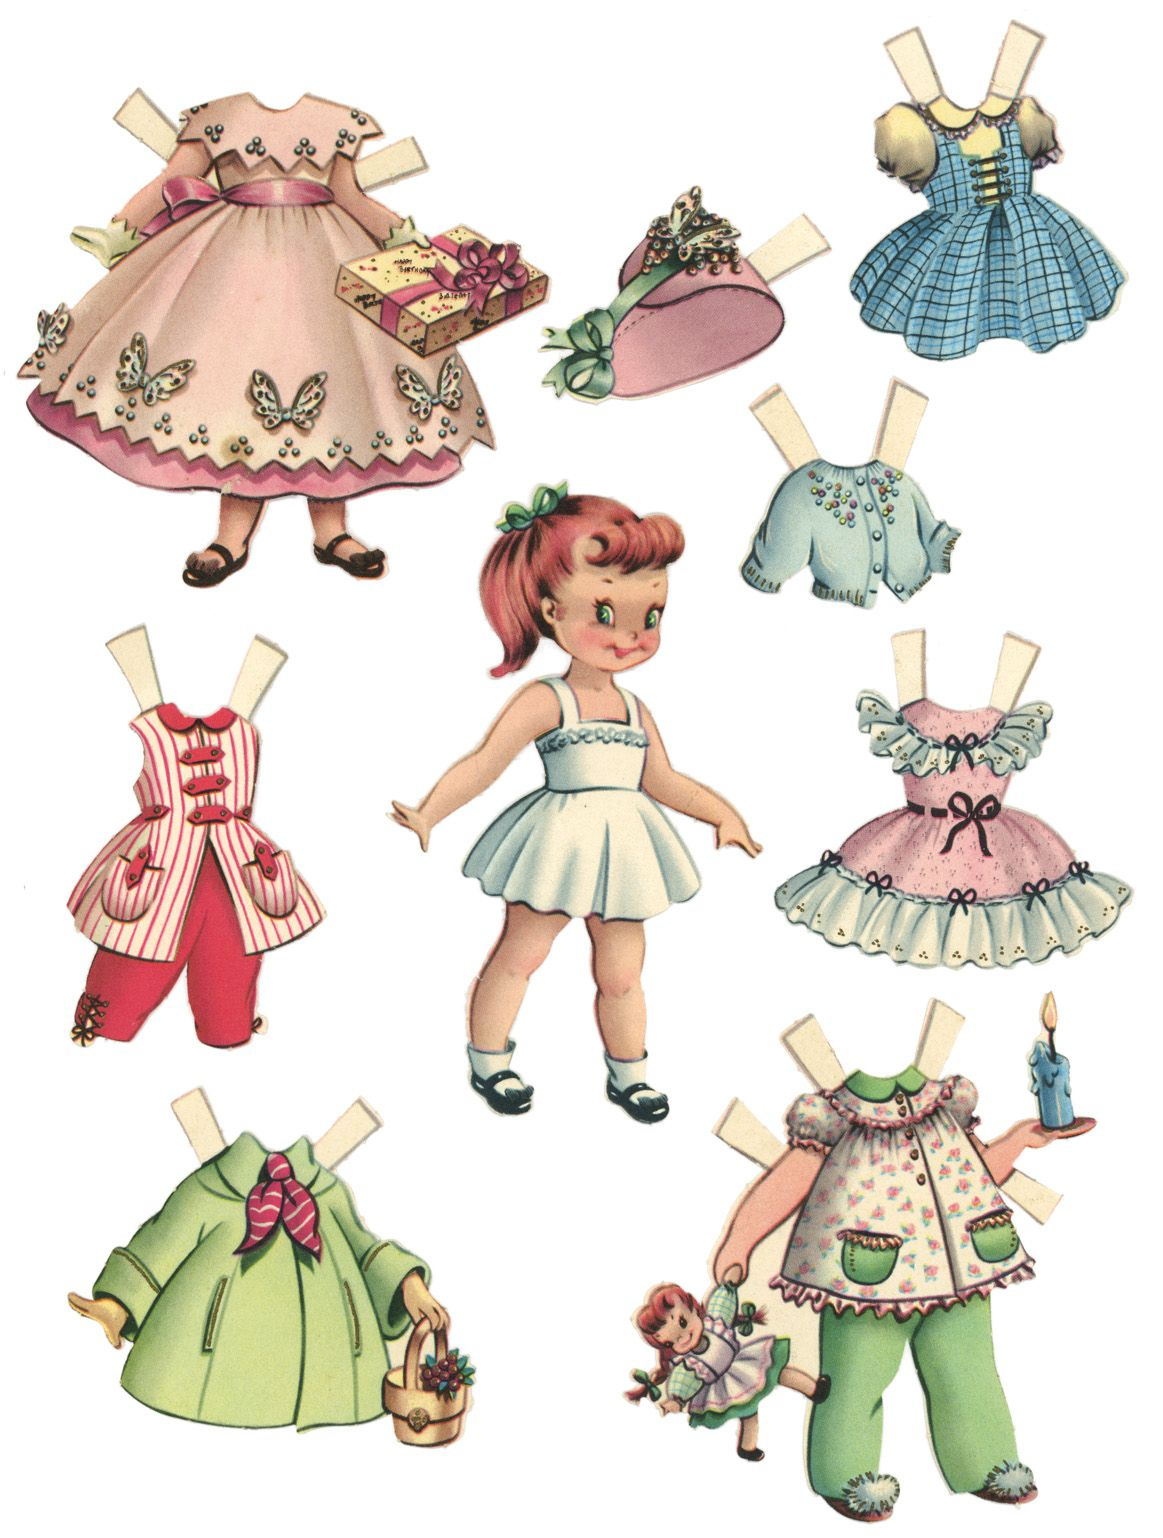 10 Free Printable Paper Dolls | Everyone Needs A Toy :) | Pinterest - Free Printable Paper Dolls From Around The World